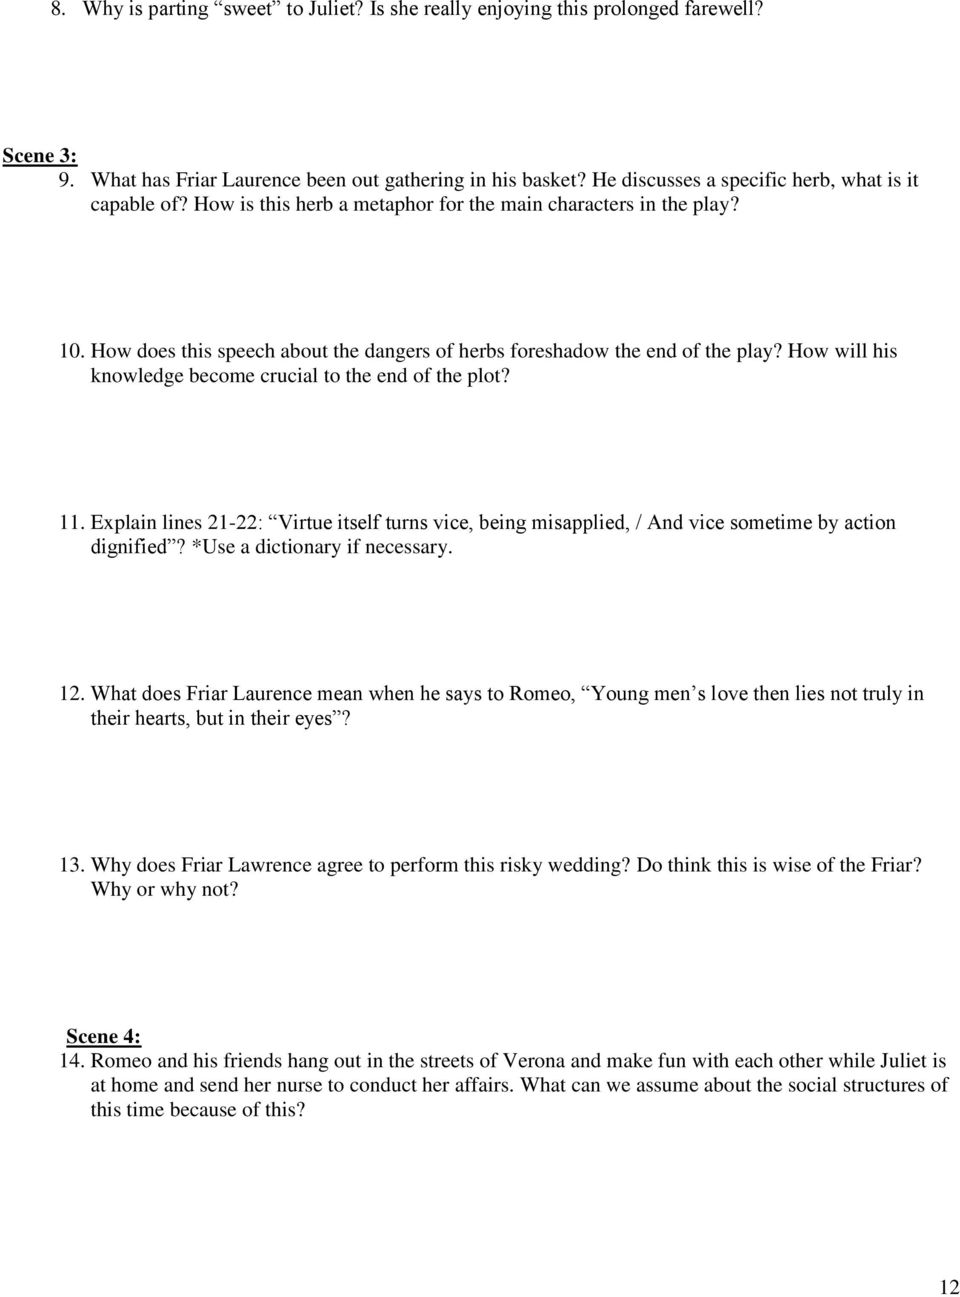 romeo juliet study guide pdf how does this speech about the dangers of herbs foreshadow the end of the play